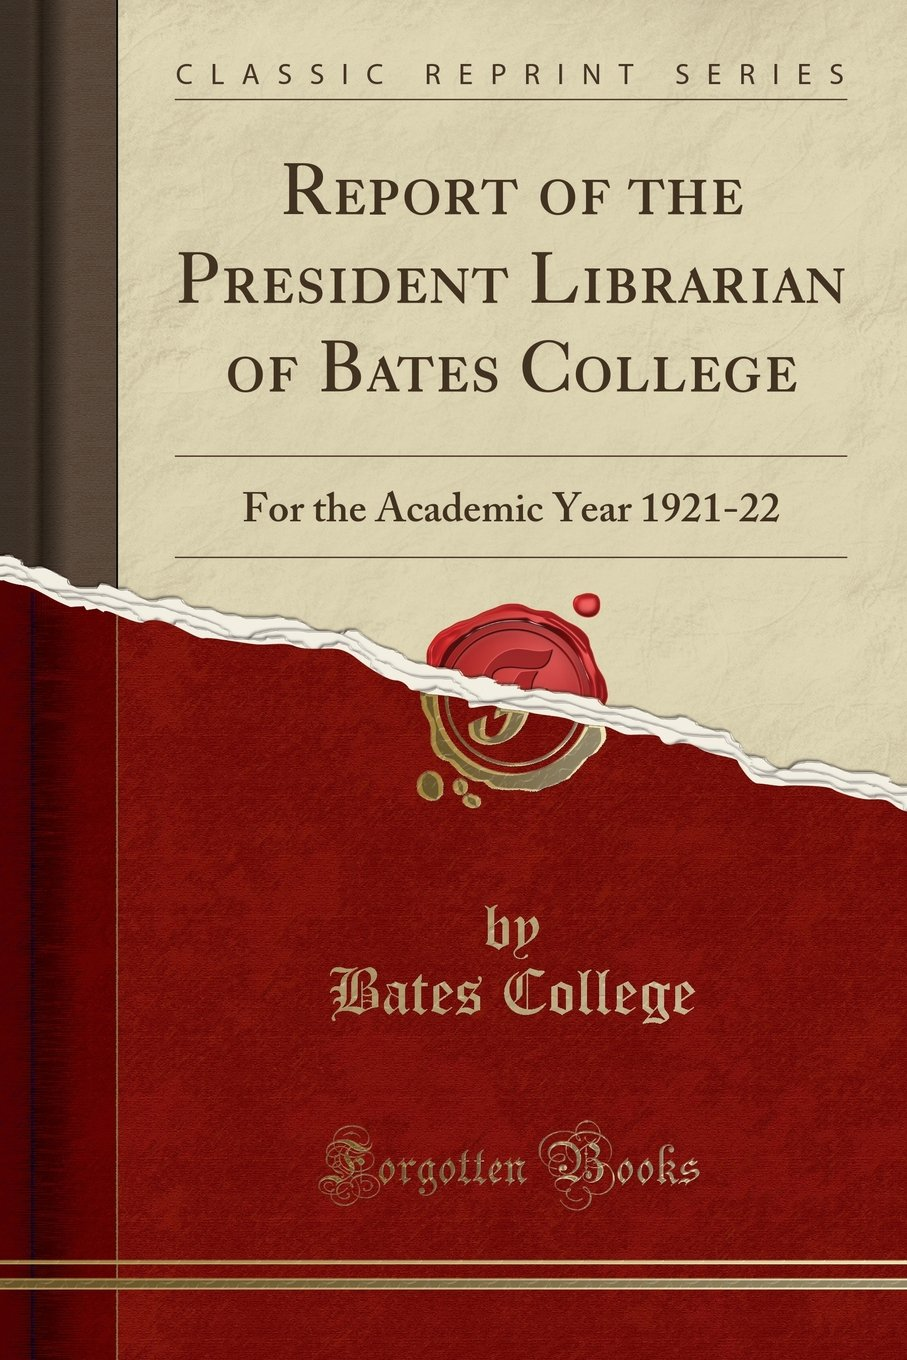 Report of the President Librarian of Bates College: For the Academic Year 1921-22 (Classic Reprint) pdf